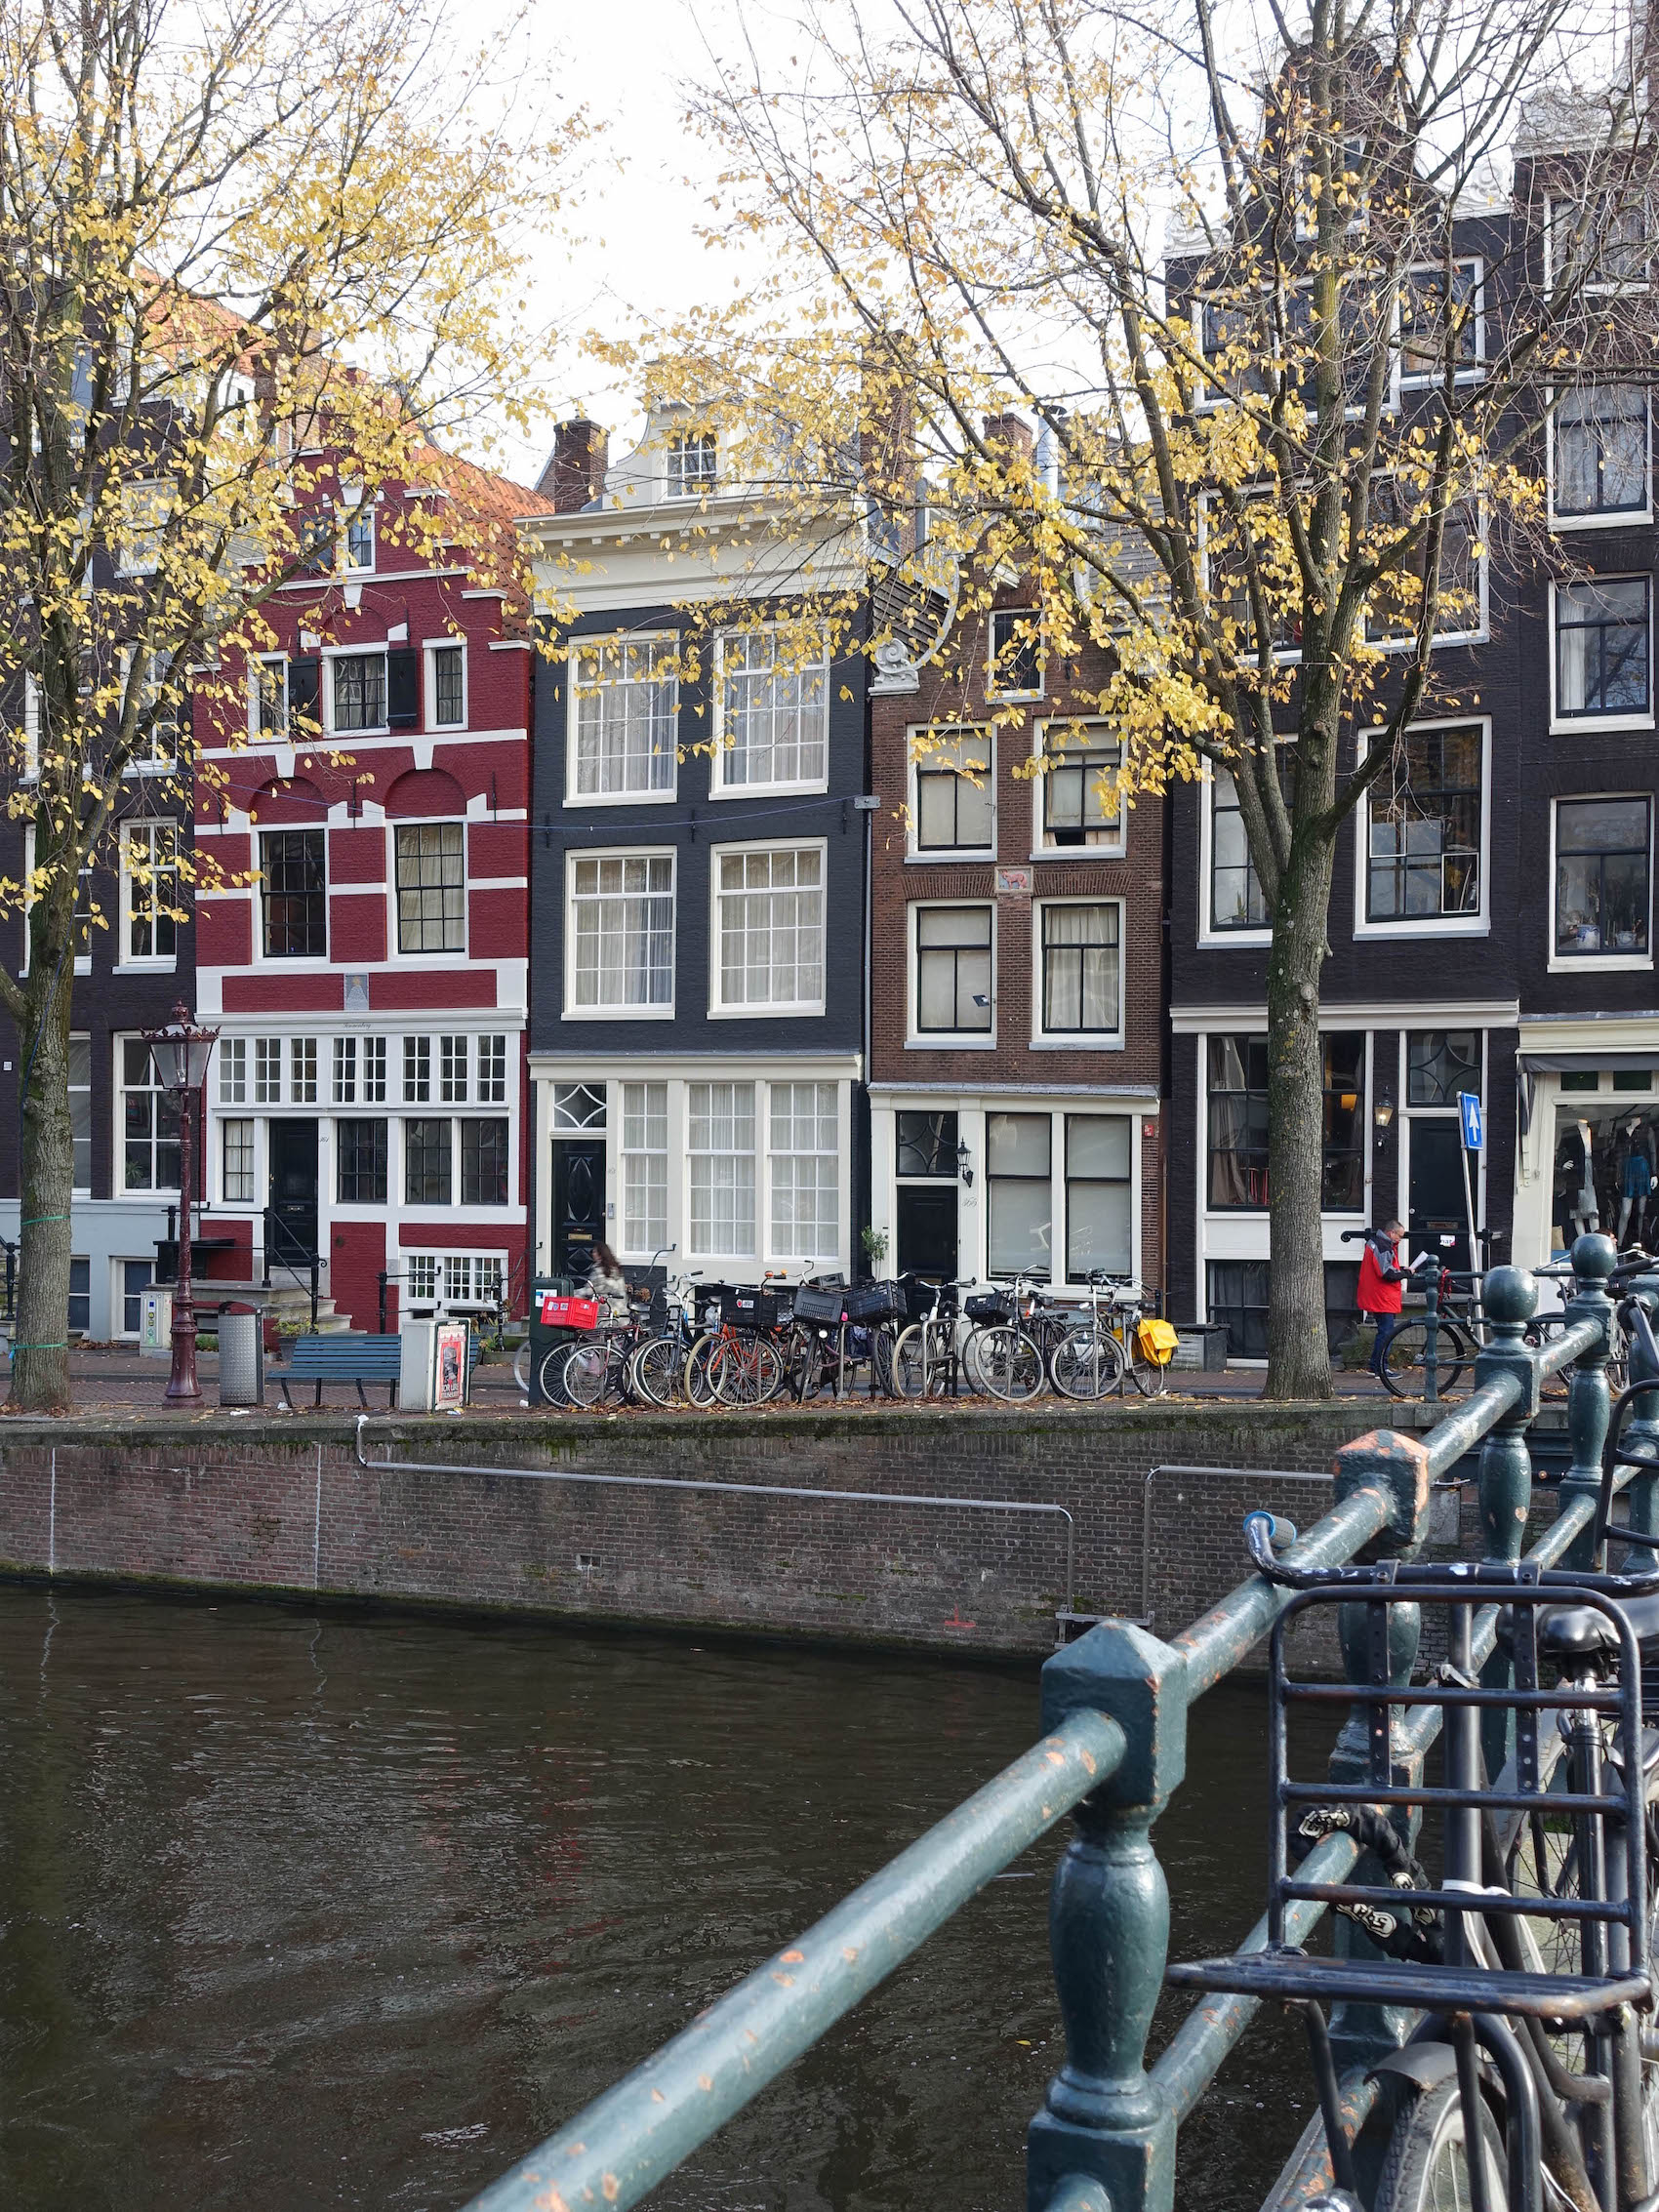 suelovesnyc_sue_loves_nyc_susan_fengler_amsterdam_tipps_reise_blog_travel_blog_amsterdam_grachten